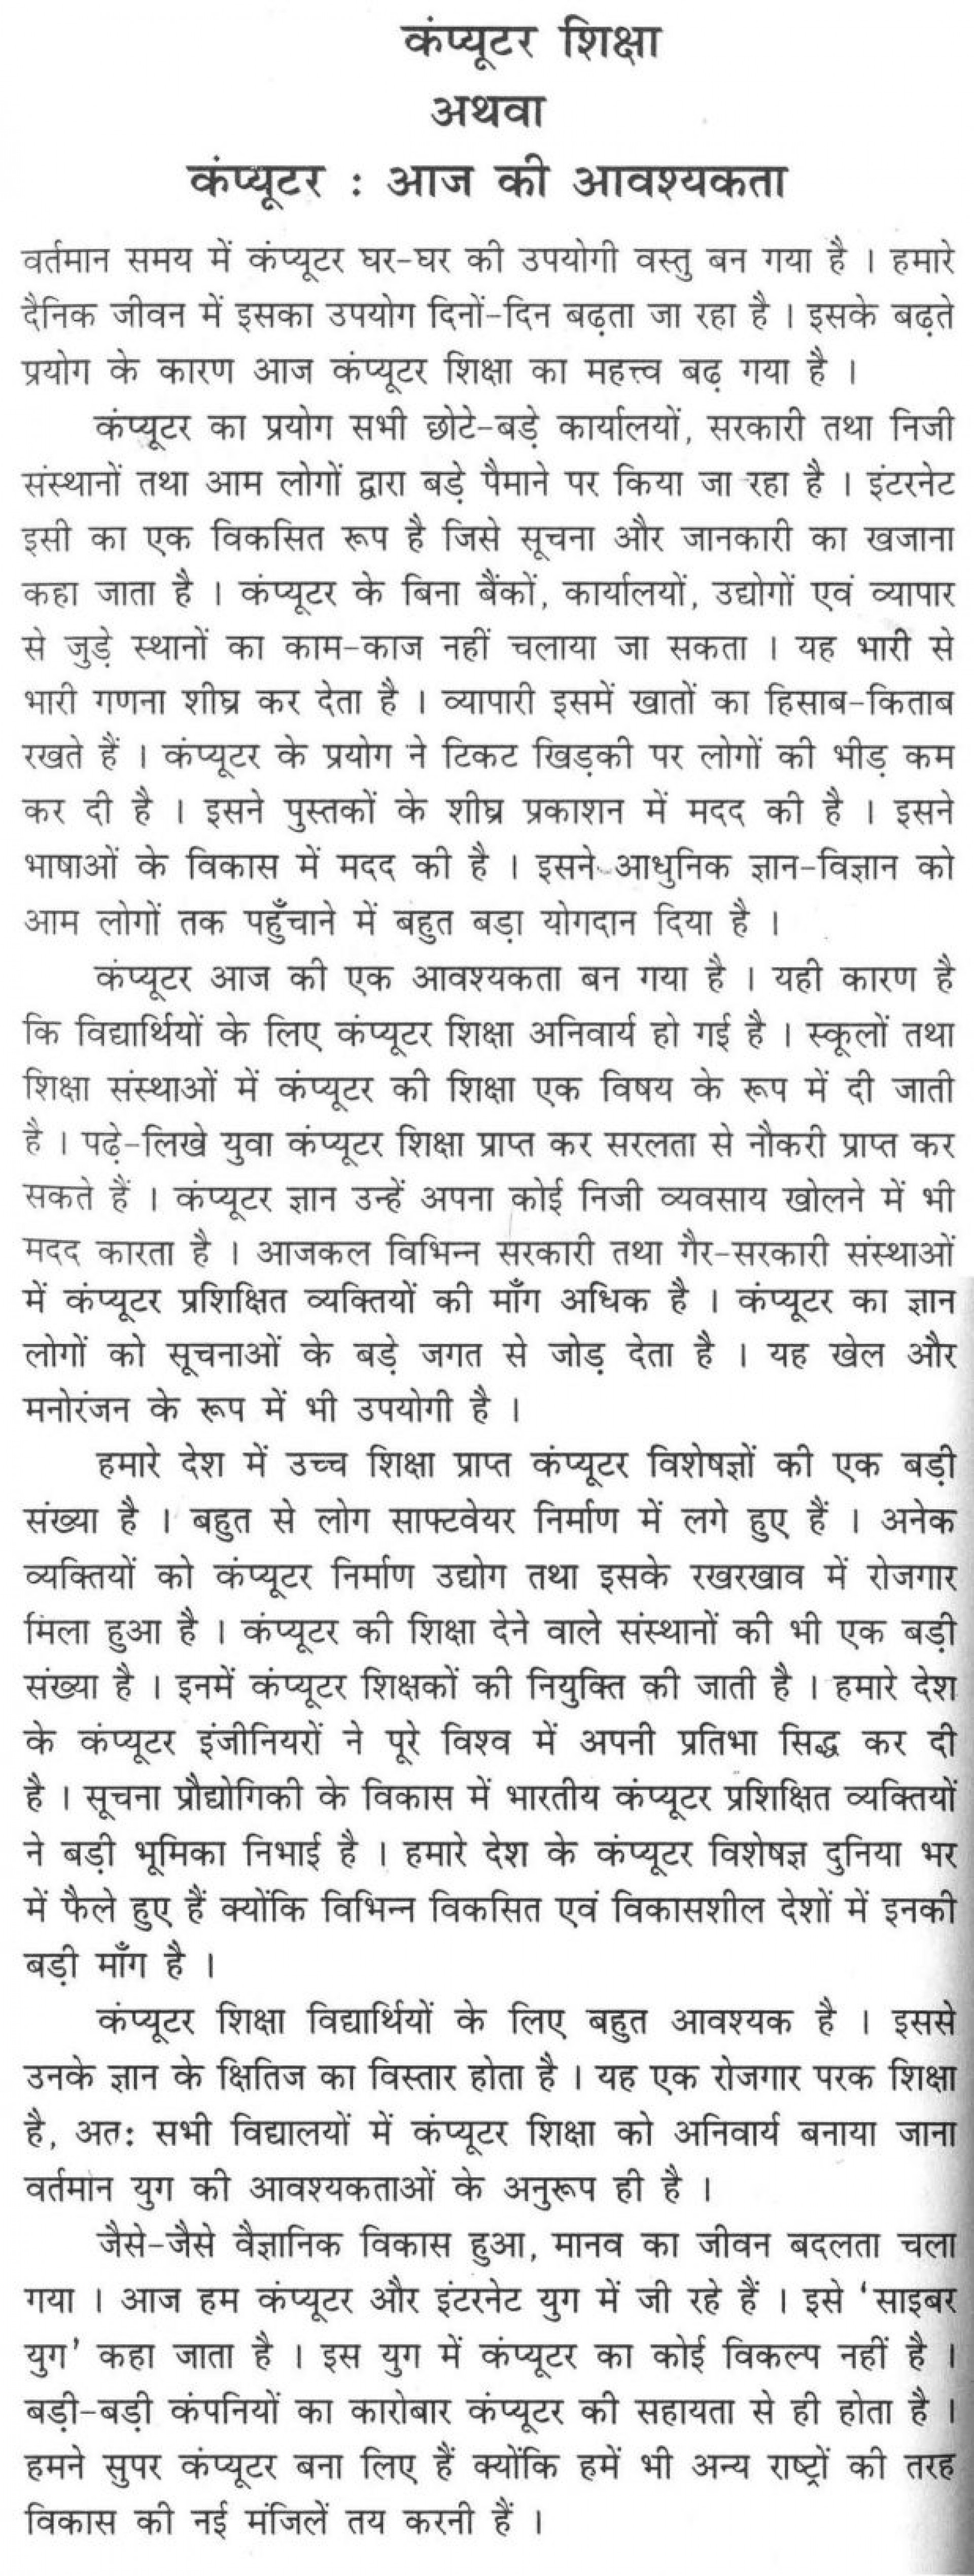 012 Essay Computer Technology Thumb Argumentative On Good Or In Hindi Education Boon Short Topics Latest Urdu Science And 618x1635 Fearsome Security Privacy Skills College 1920